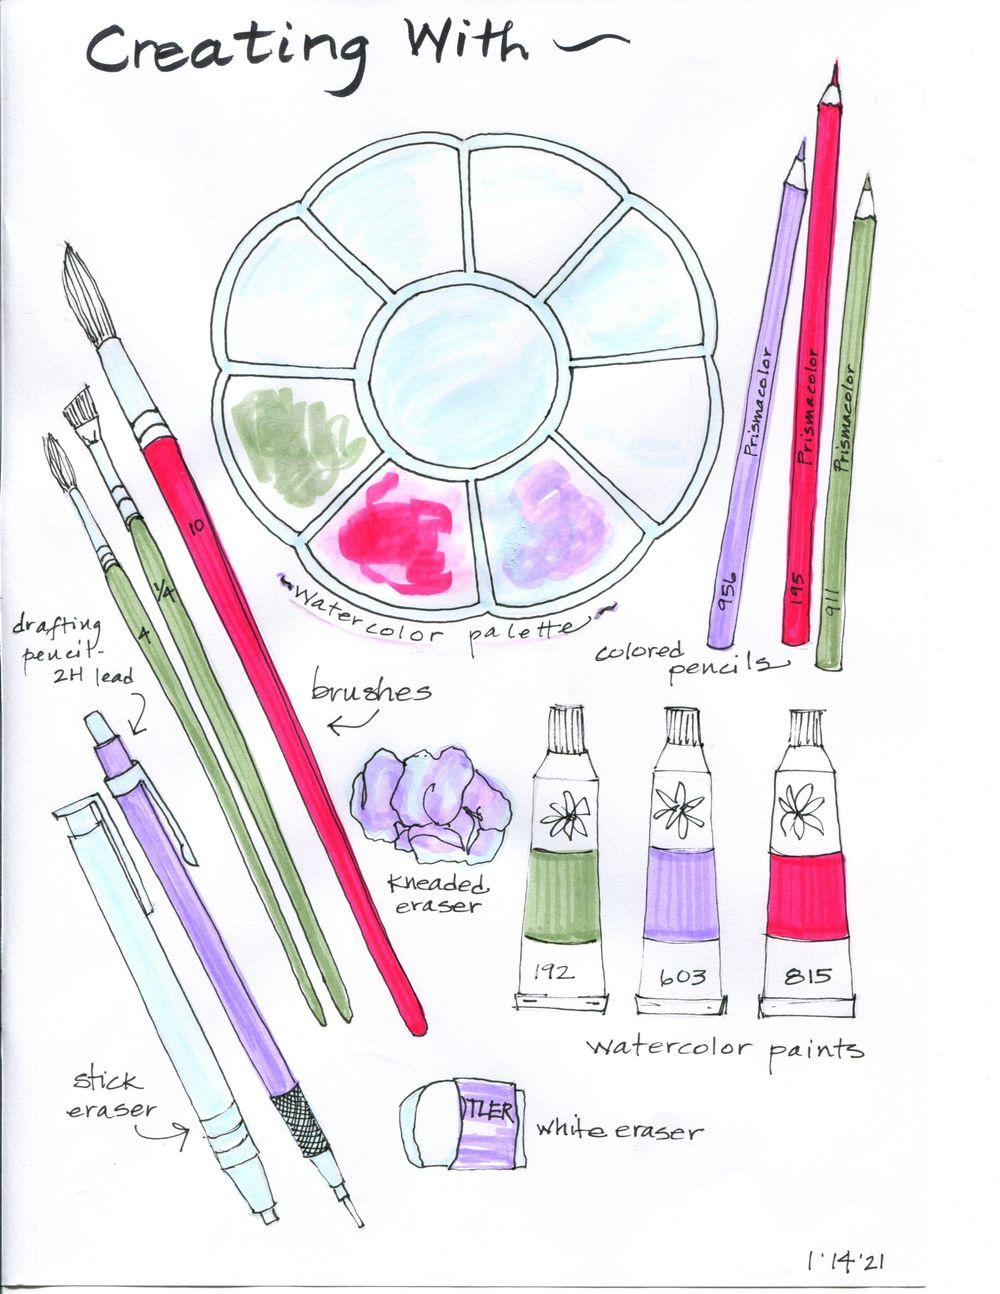 my 14-day illustrated journal - image 4 - student project